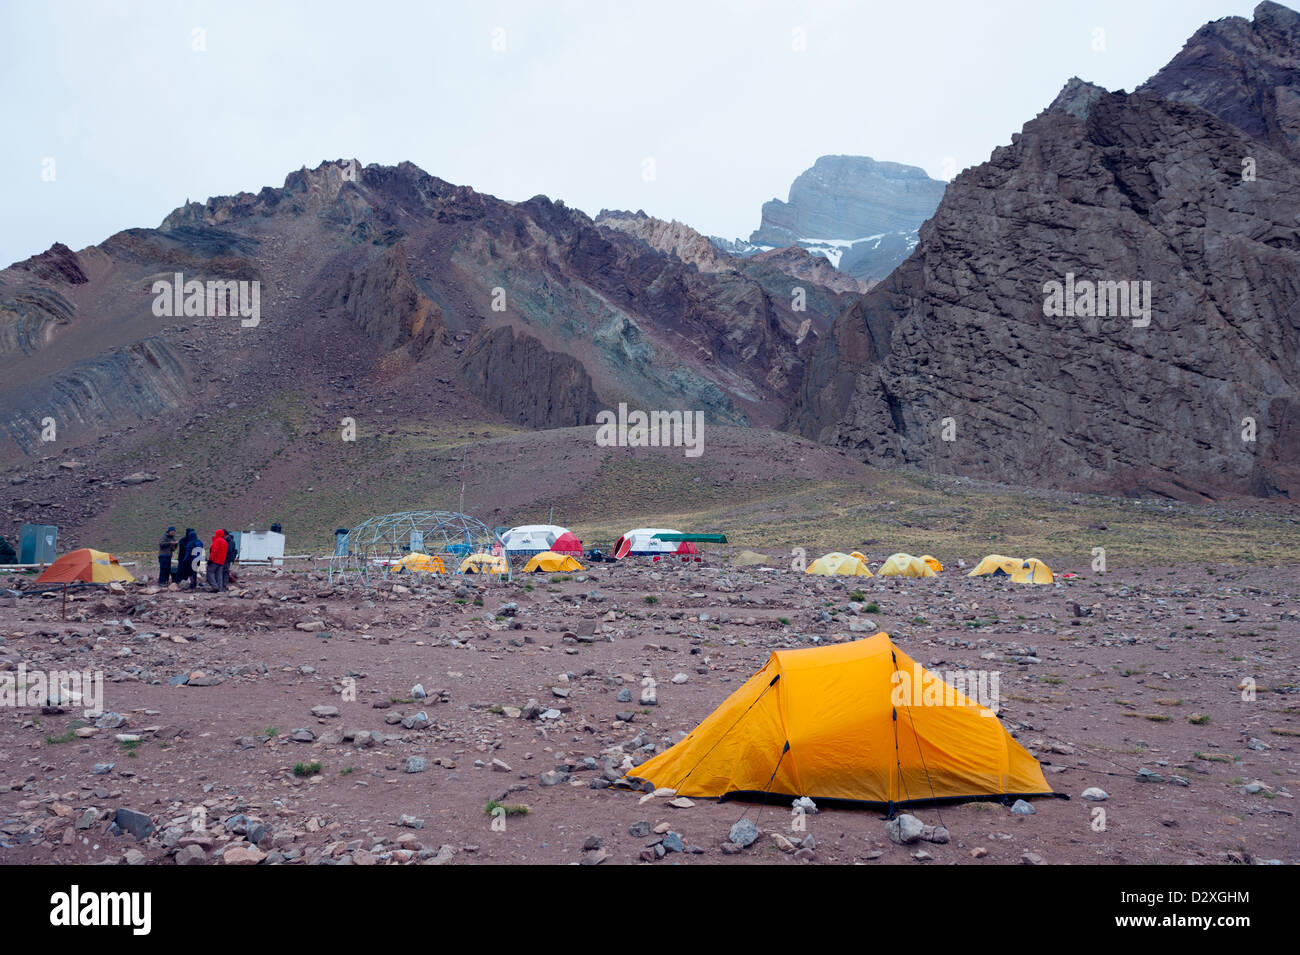 campsite at Confluencia, Aconcagua 6962m, highest peak in South America and outside the himalayas, Aconcagua Provincial - Stock Image